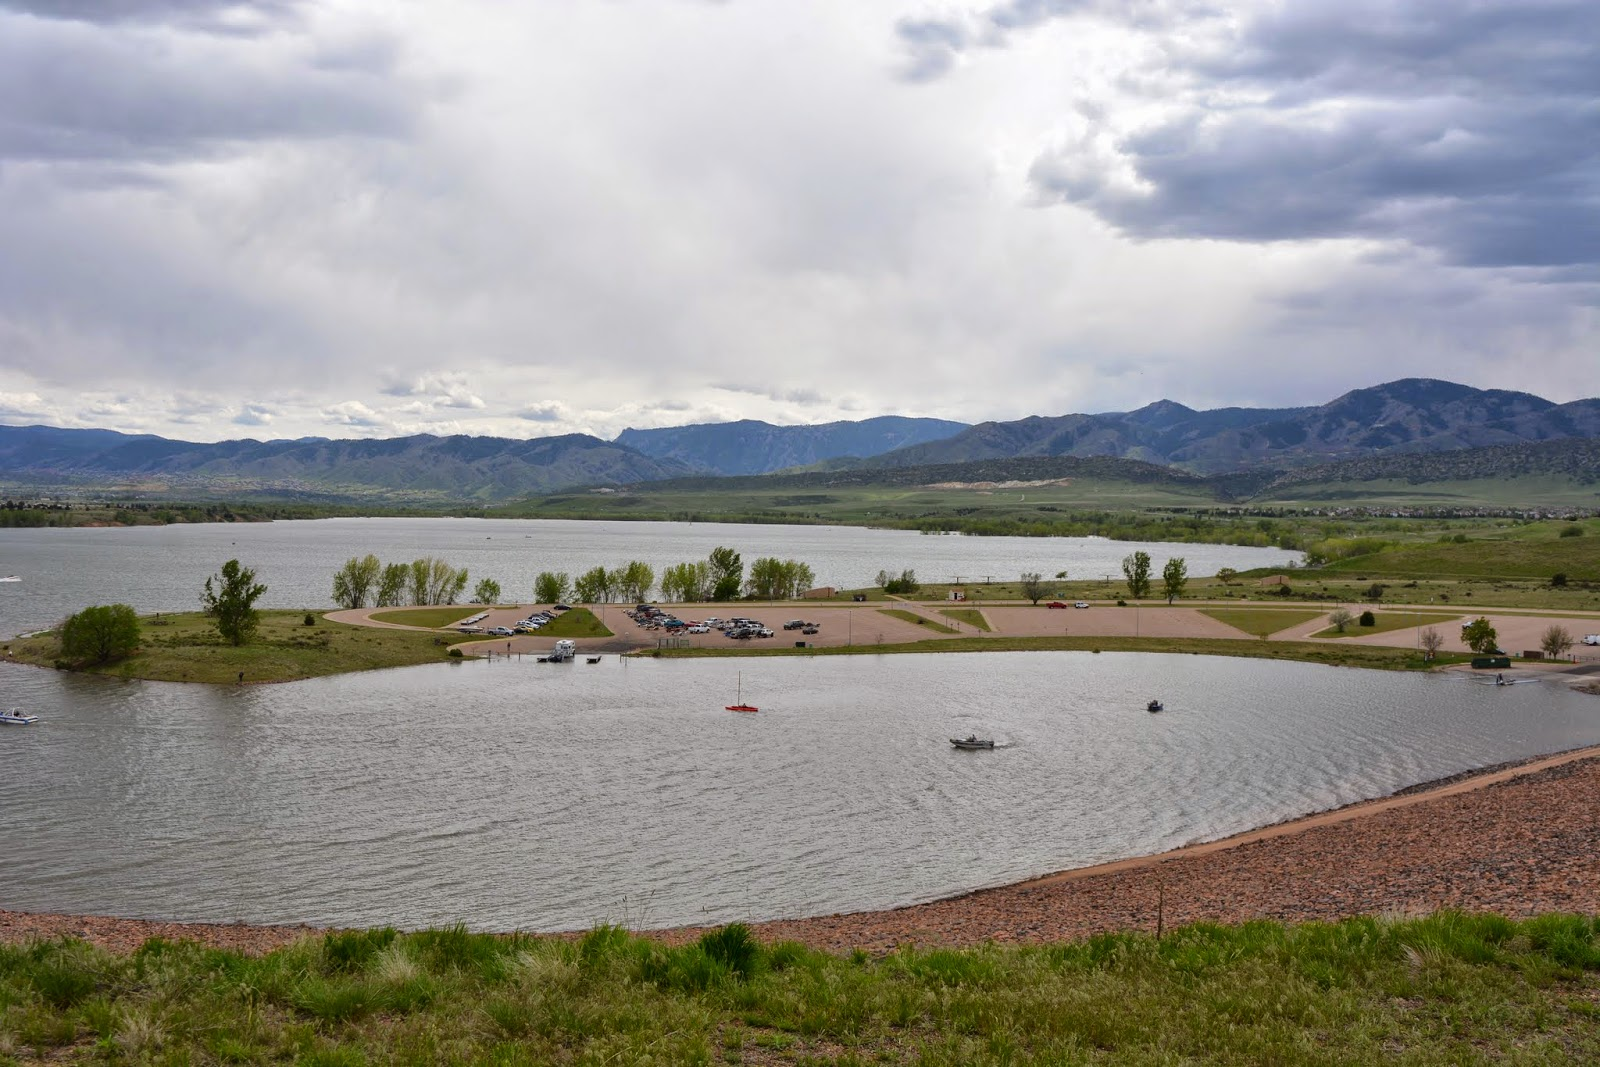 Mille fiori favoriti flood at chatfield reservoir in for Chatfield reservoir fishing